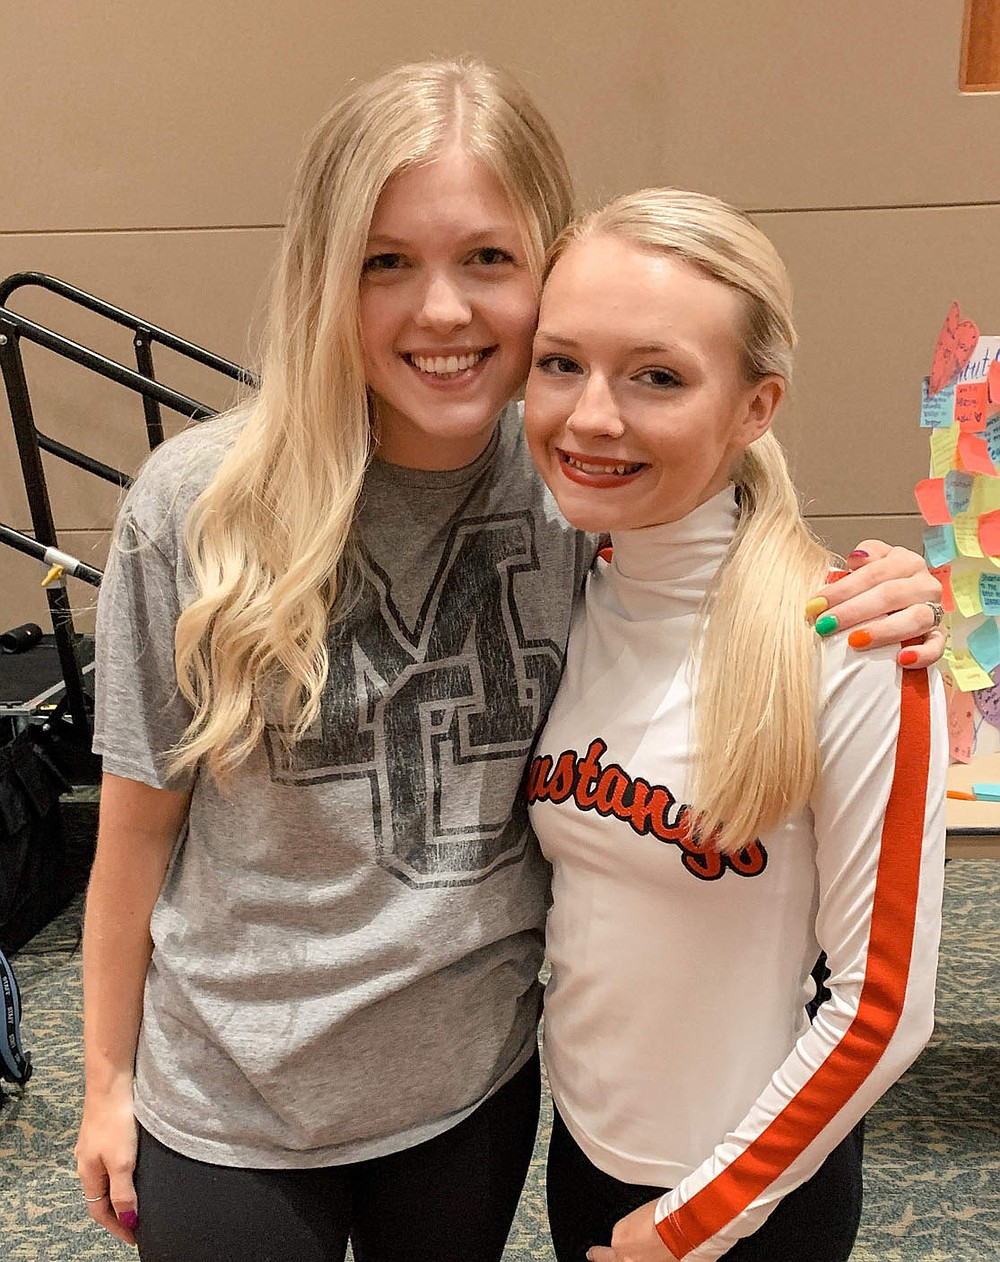 COURTESY PHOTO Kimbrough and her coach, Eden LeGrand. LeGrand said Kimbrough is a role model in the MC Pom team, and hopes additional students will audition to be All-American next year.